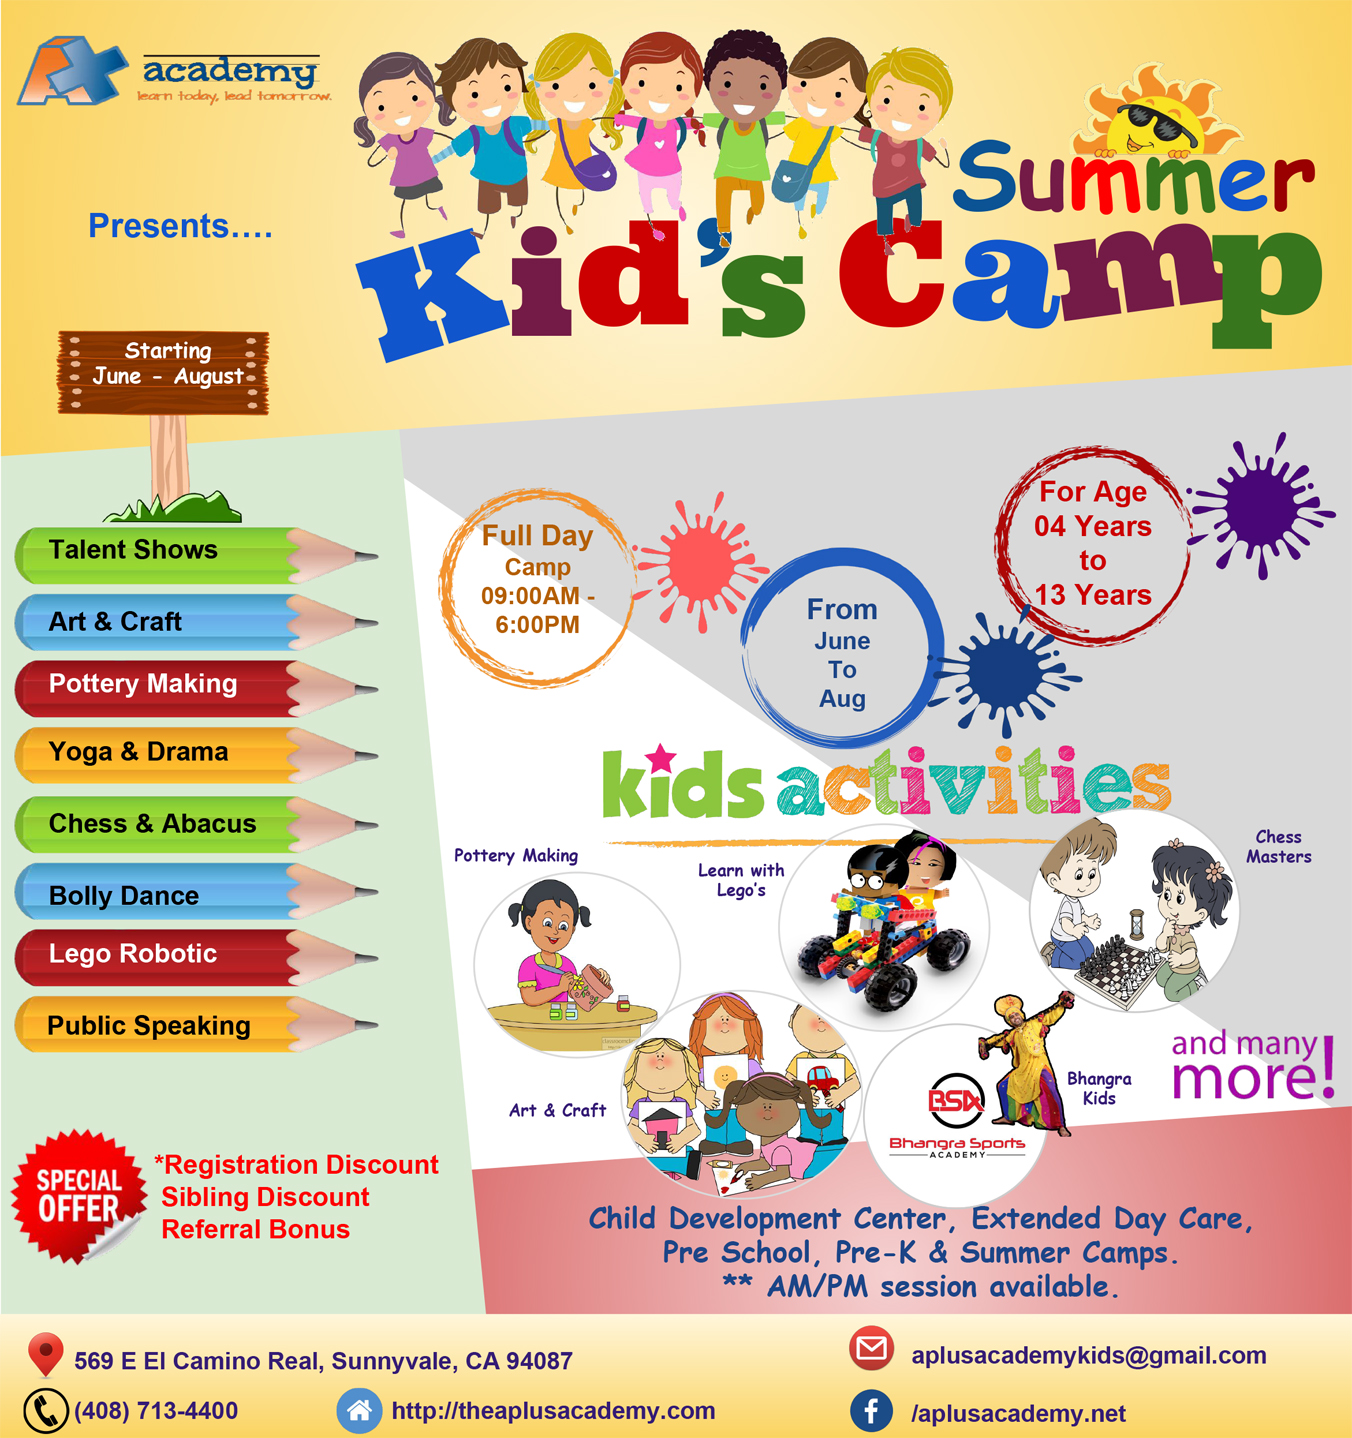 Summer Camp A+ Academy